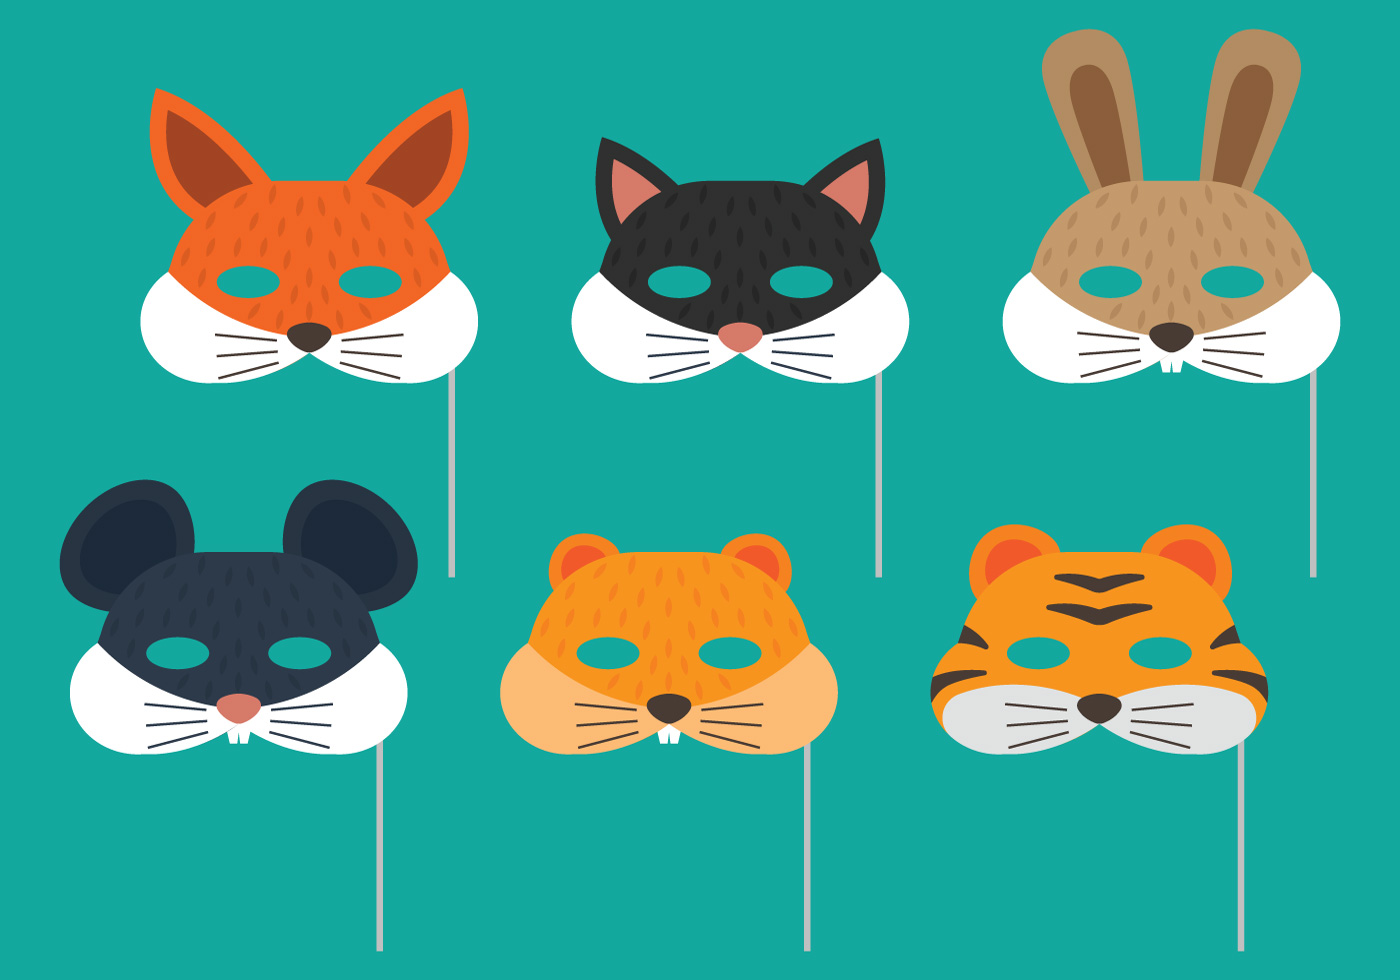 Animal Purim Mask - Download Free Vector Art, Stock Graphics & Images